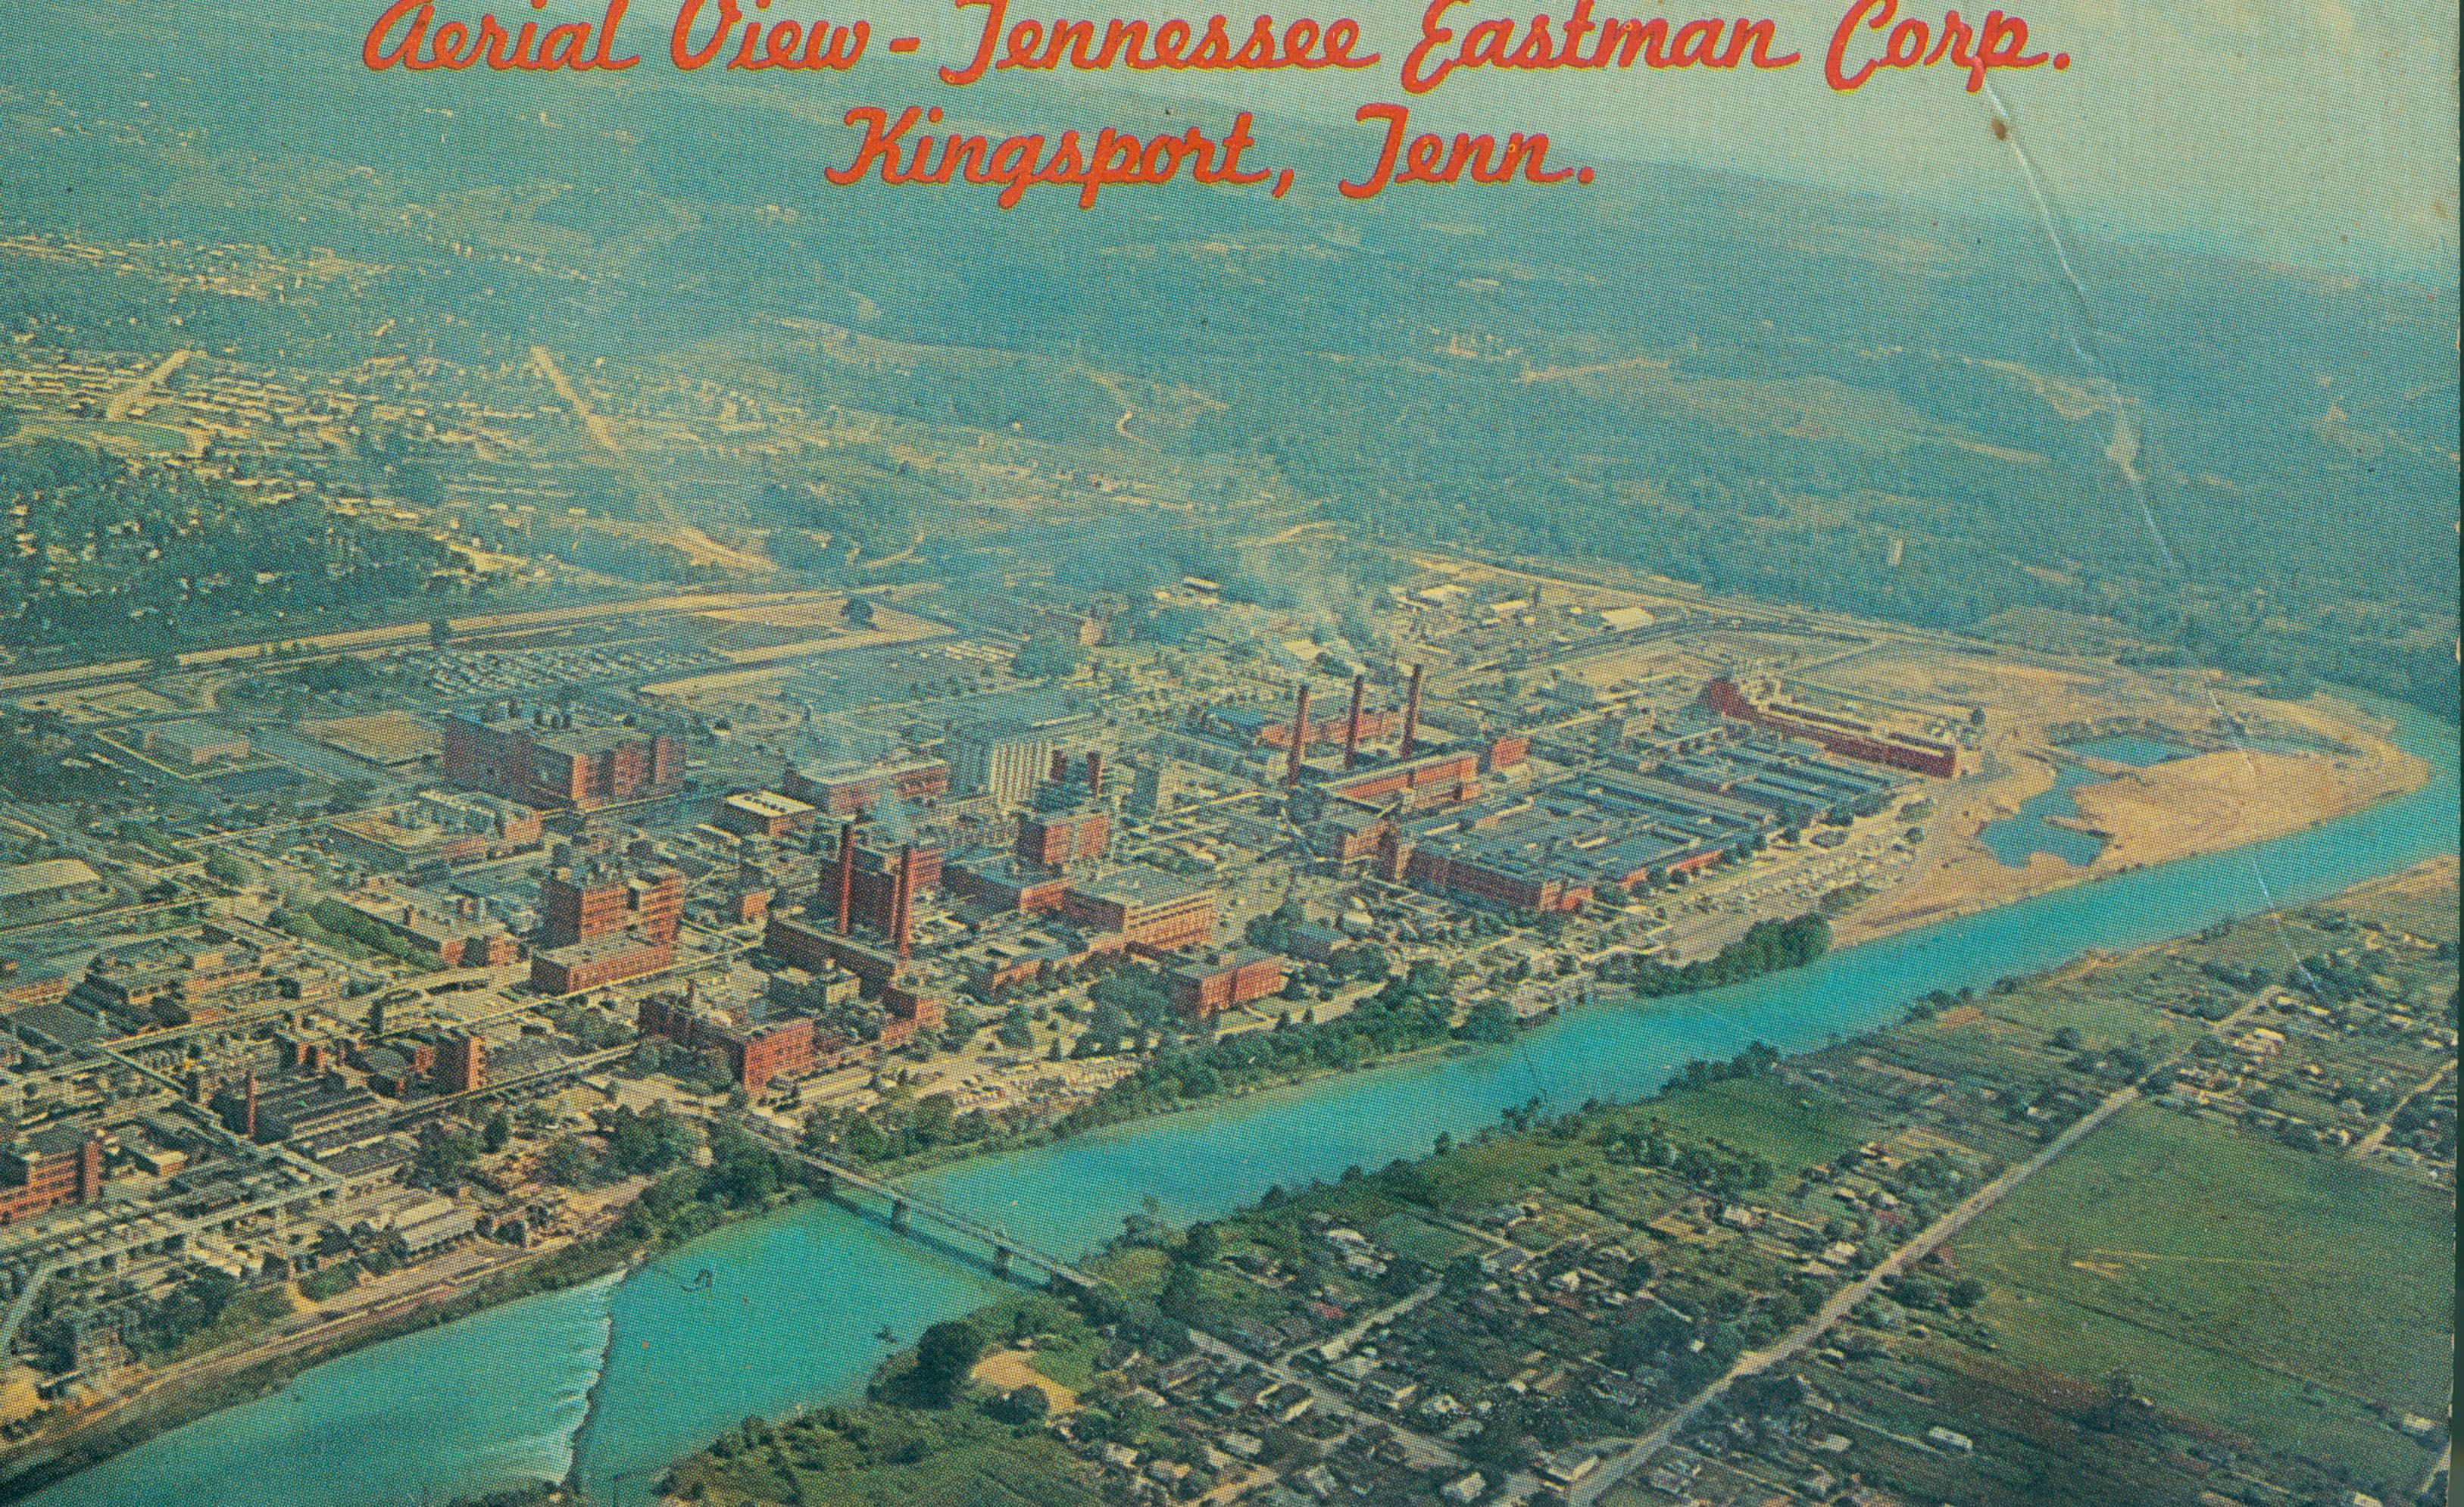 Aerial view of Tennessee Eastman Corporation | Eastern